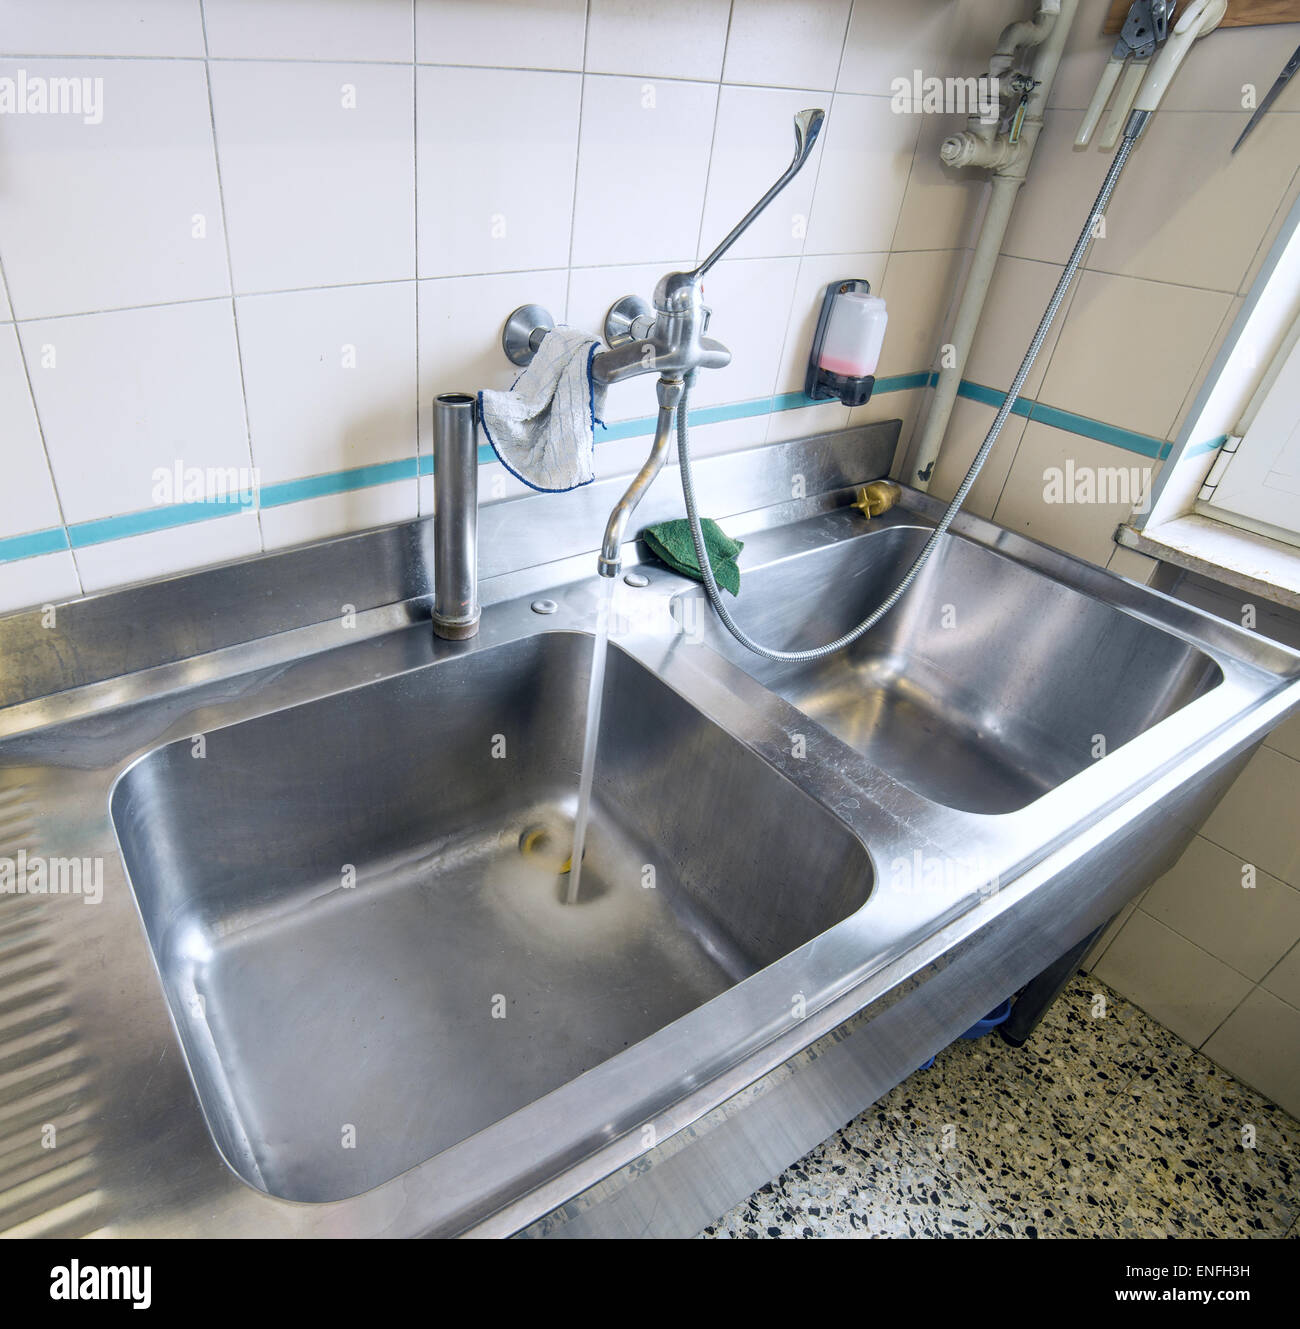 sink stainless steel industrial kitchen with open tap Stock Photo